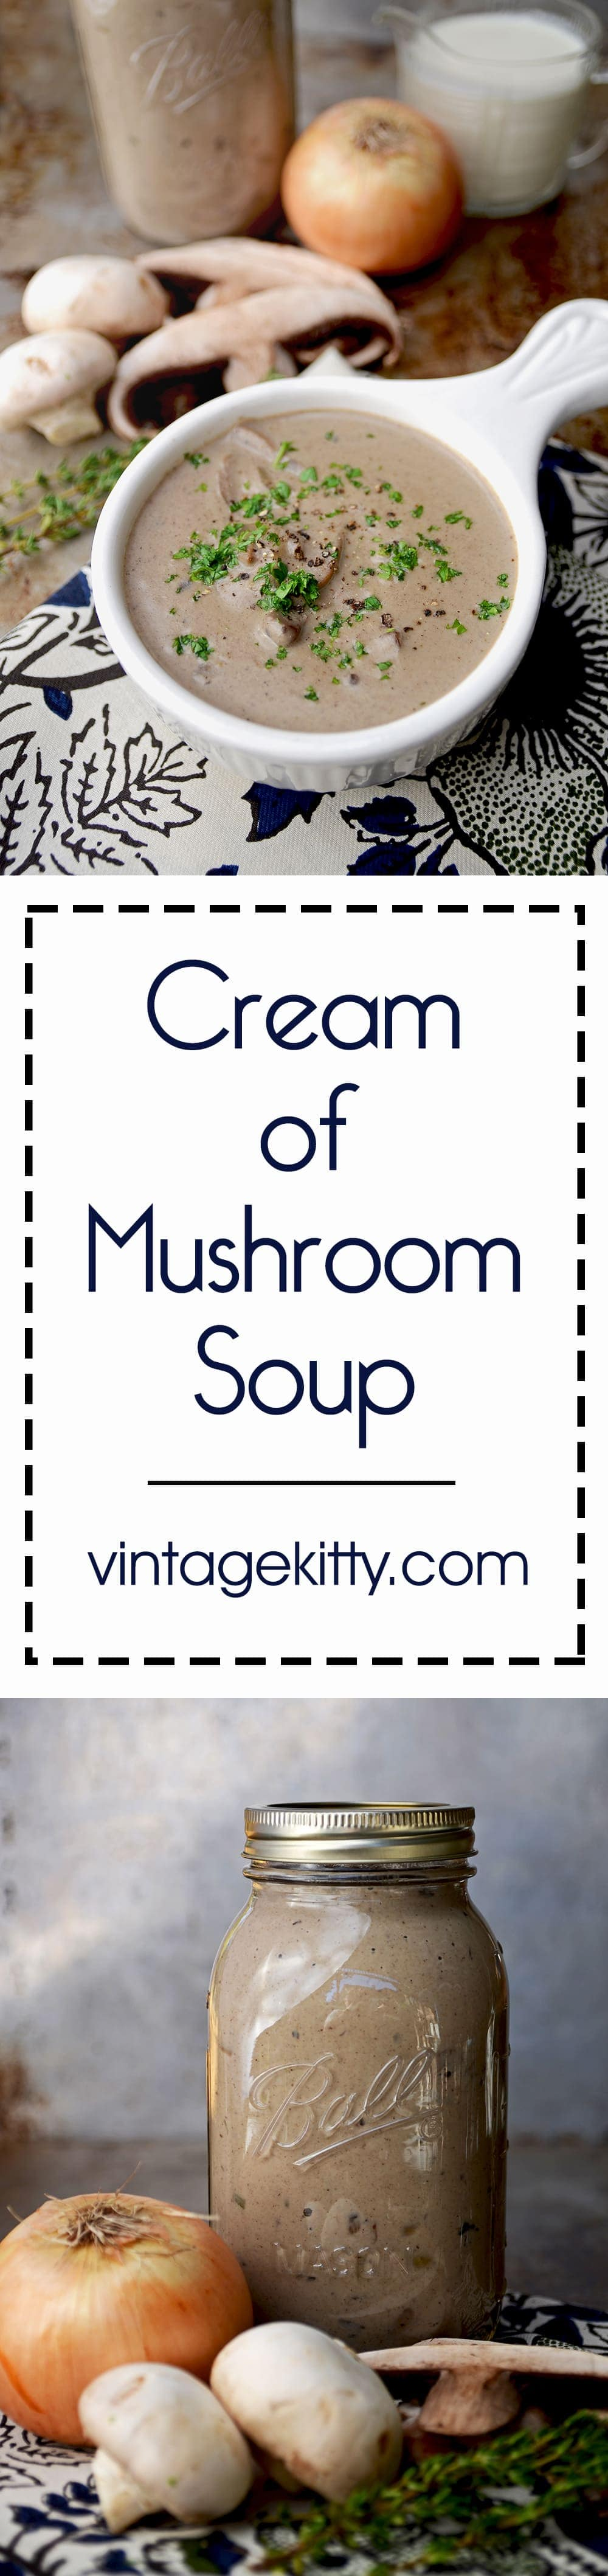 Ditch the can this holiday season by making Cream of Mushroom Soup from scratch for all your casserole needs. Or you can just eat the soup because it is luxuriously creamy and rich! | vintagekitty.com